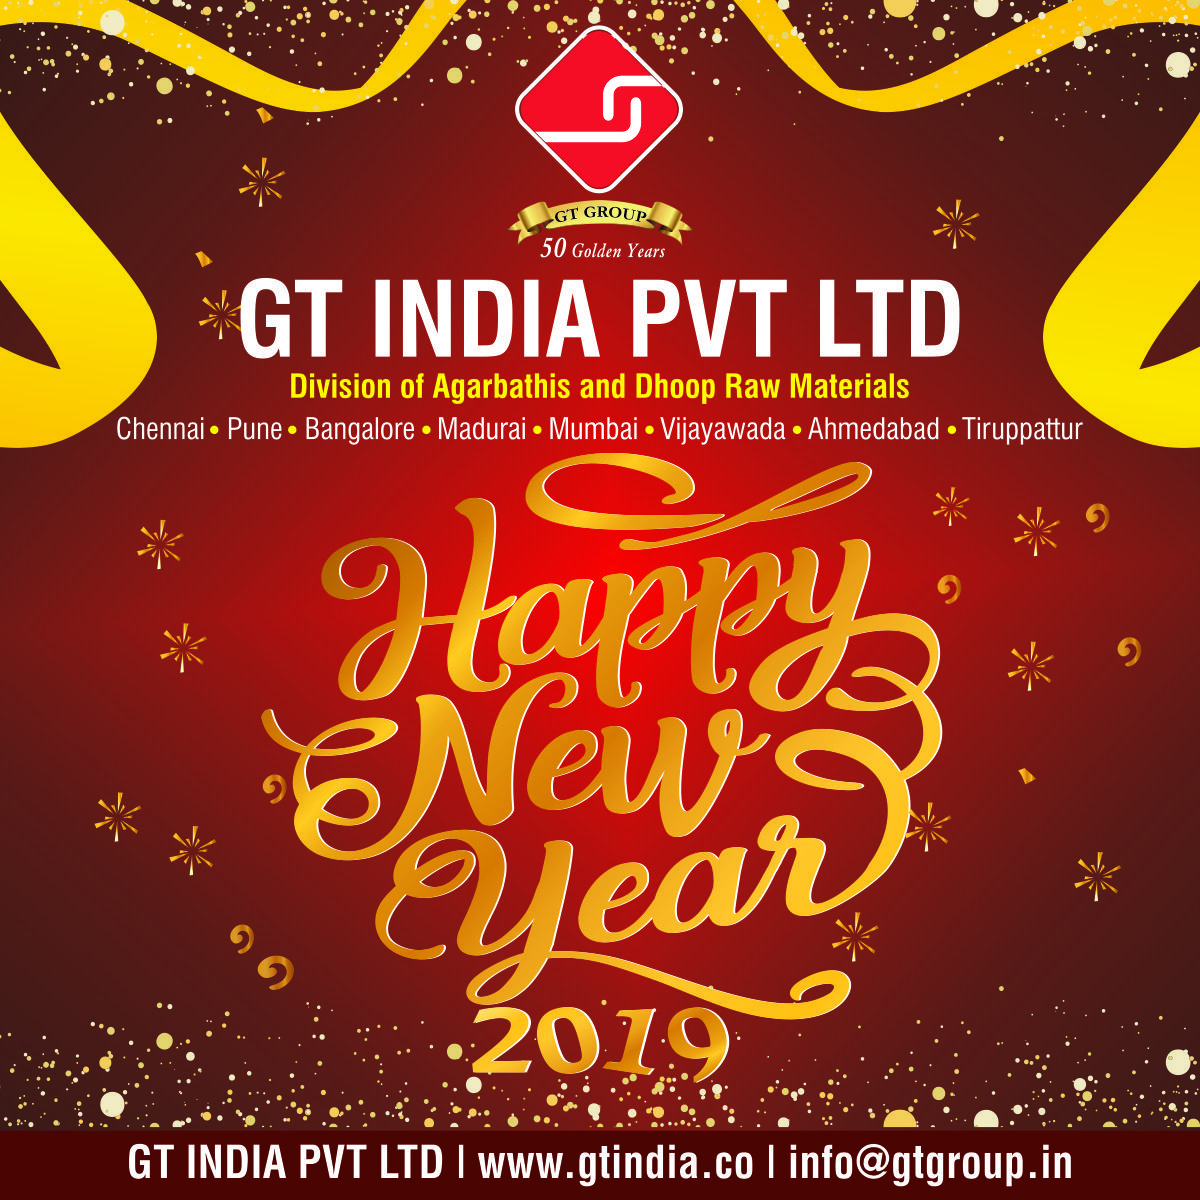 We Wish You A Happy New Year Welcome To 2019 Happynewyear